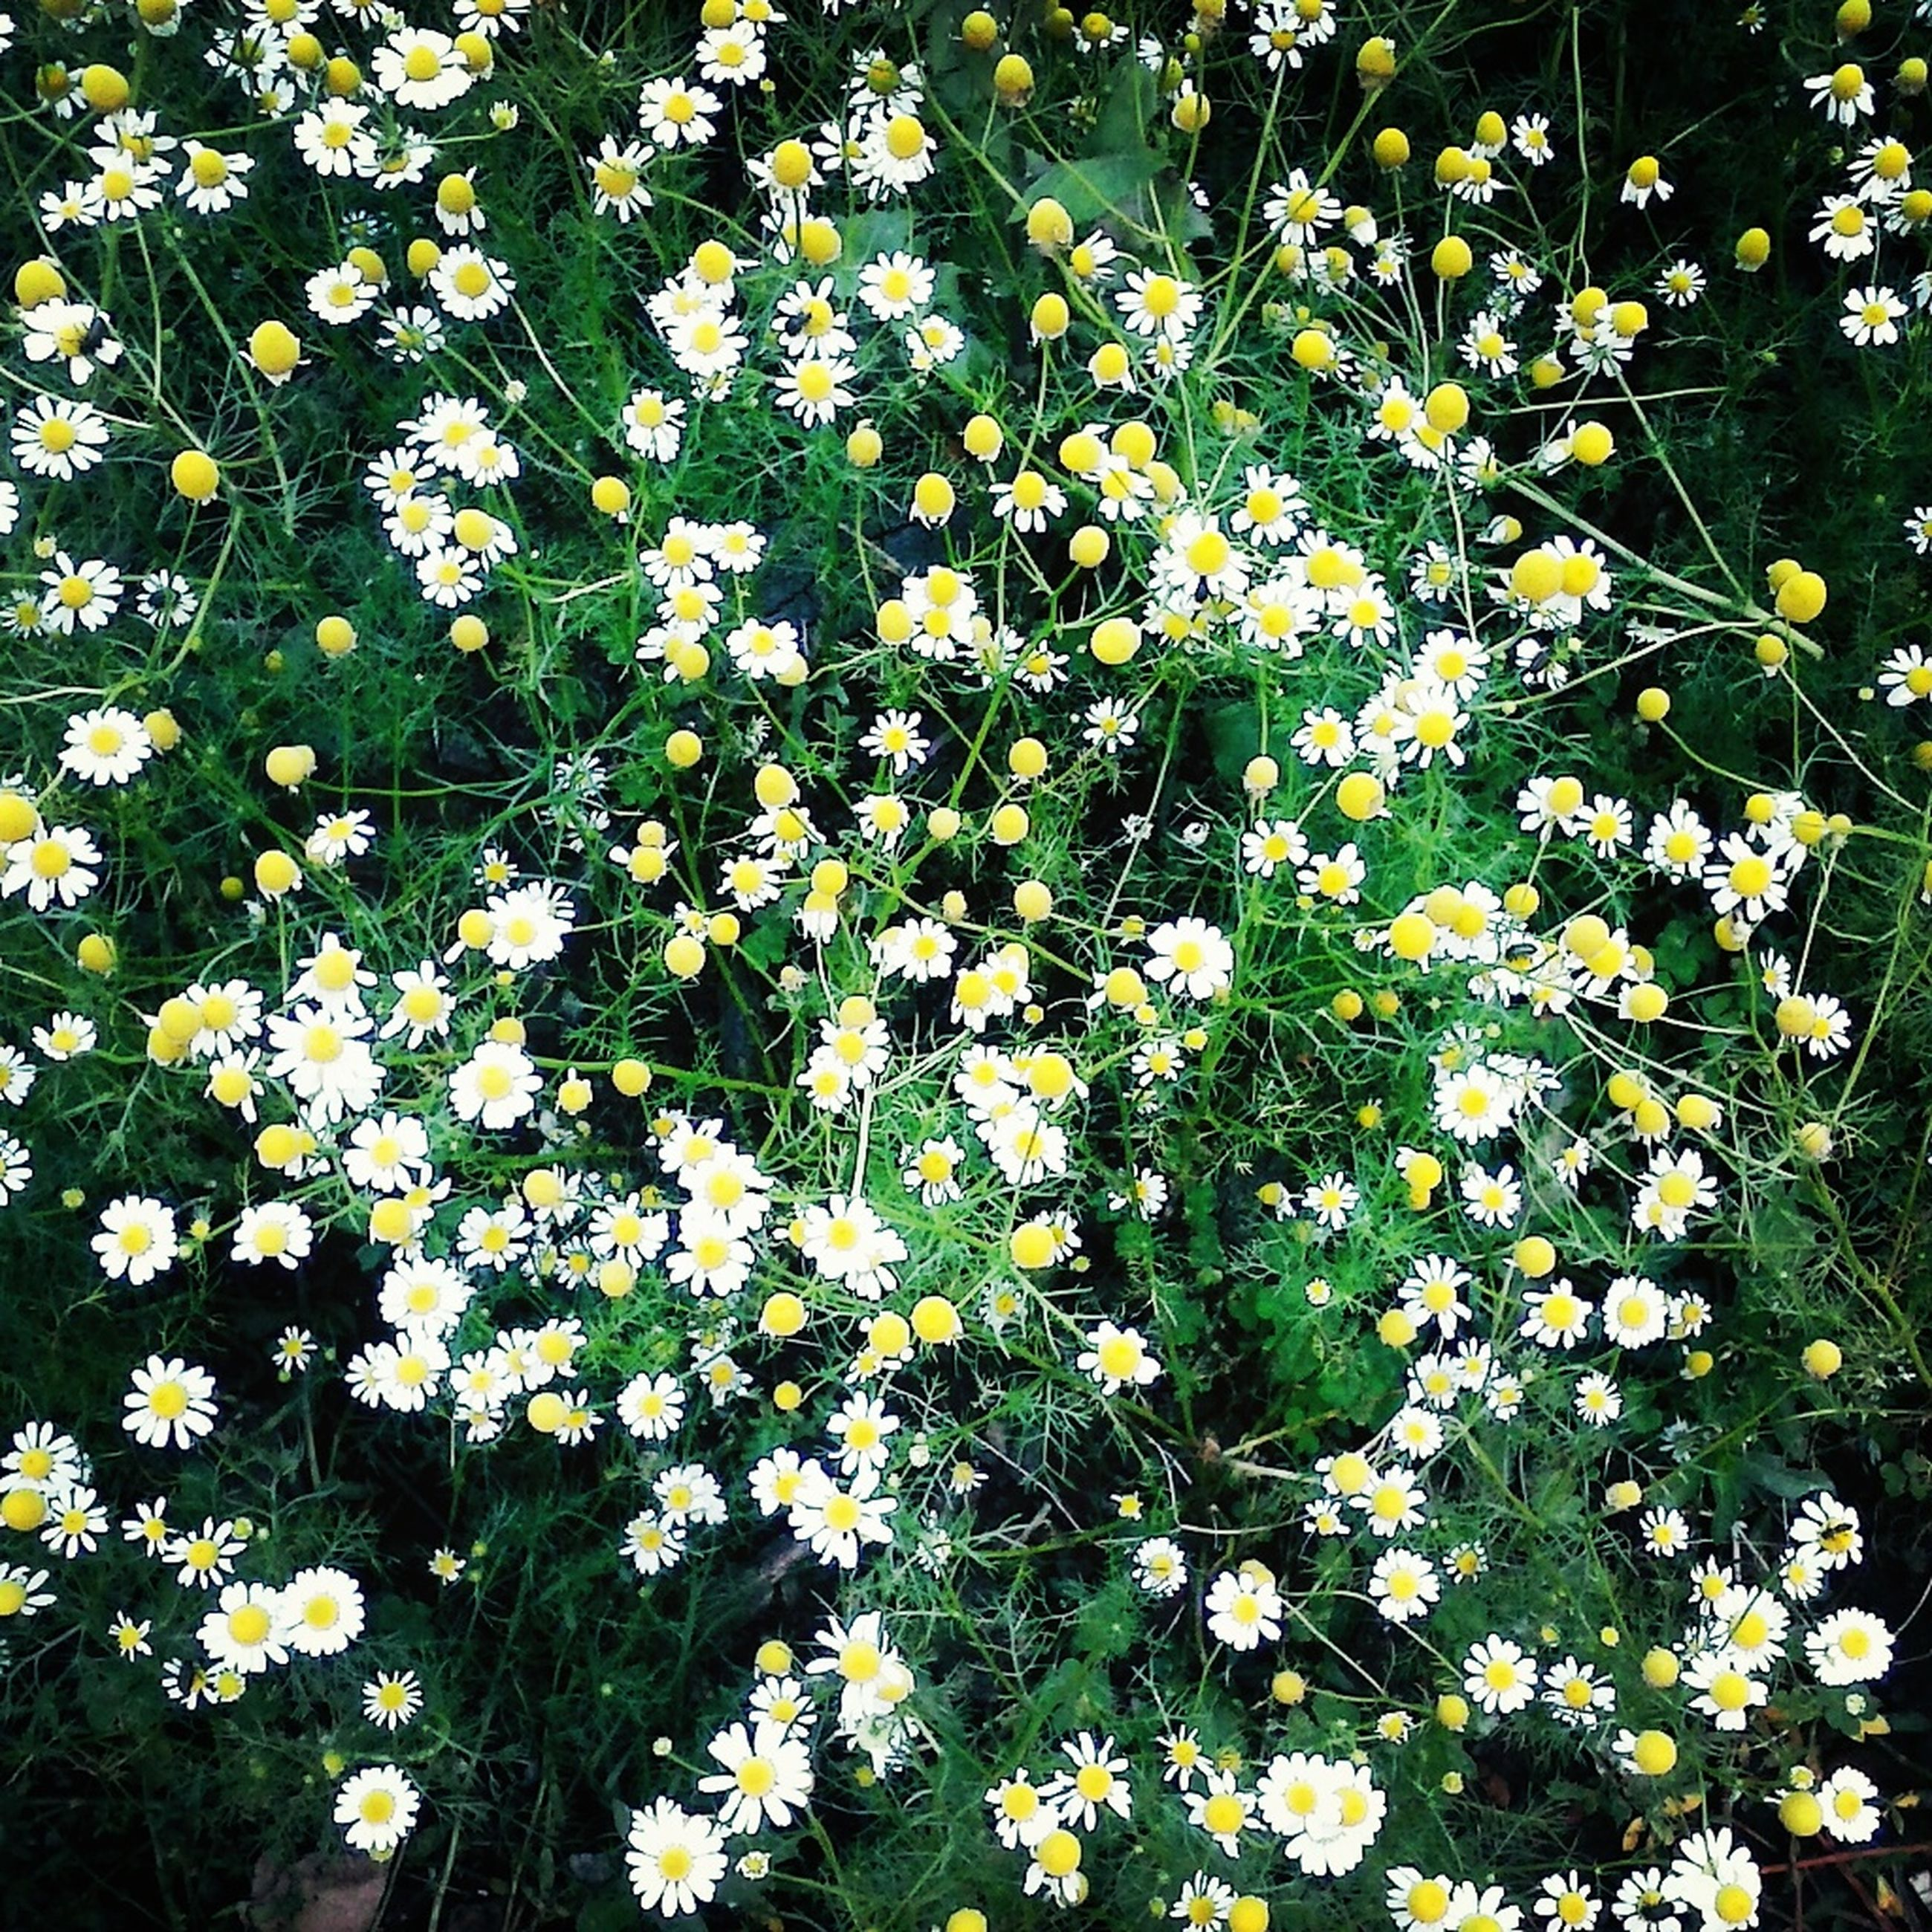 flower, freshness, growth, fragility, beauty in nature, white color, petal, nature, blooming, plant, flower head, in bloom, field, blossom, high angle view, full frame, abundance, backgrounds, springtime, day